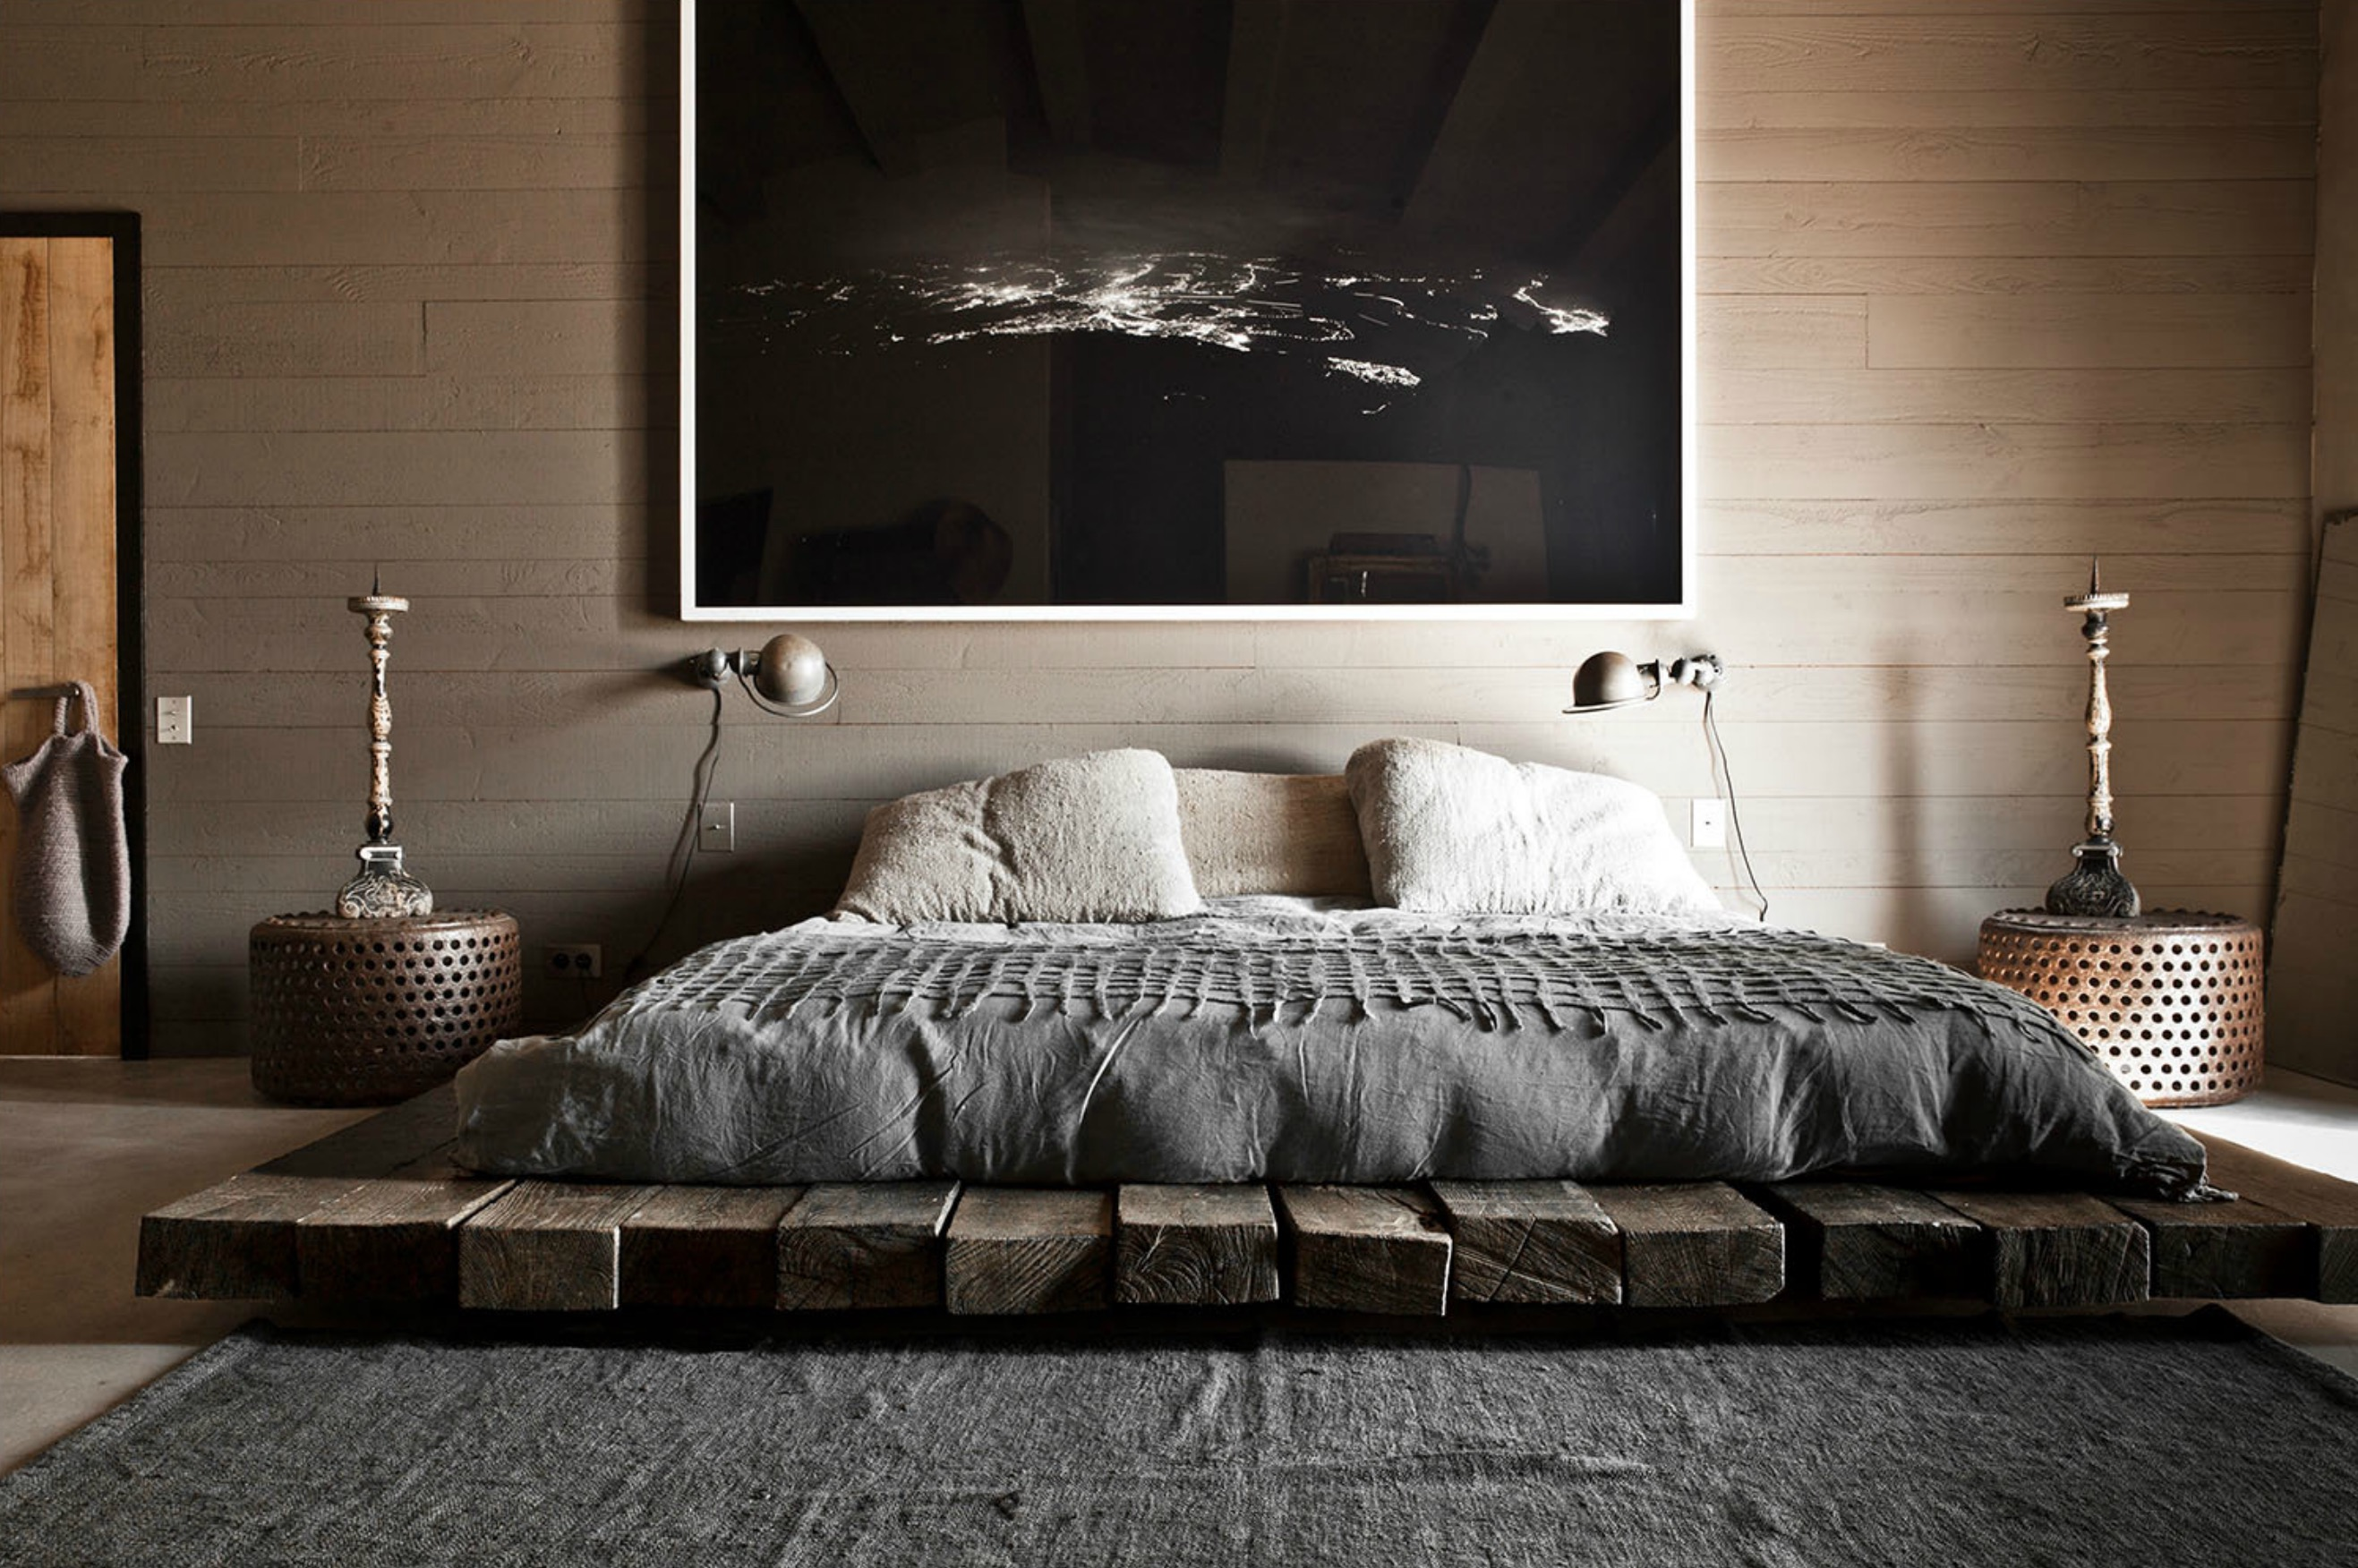 10 Low Height & Floor Bed Designs That Will Make You Sleepy